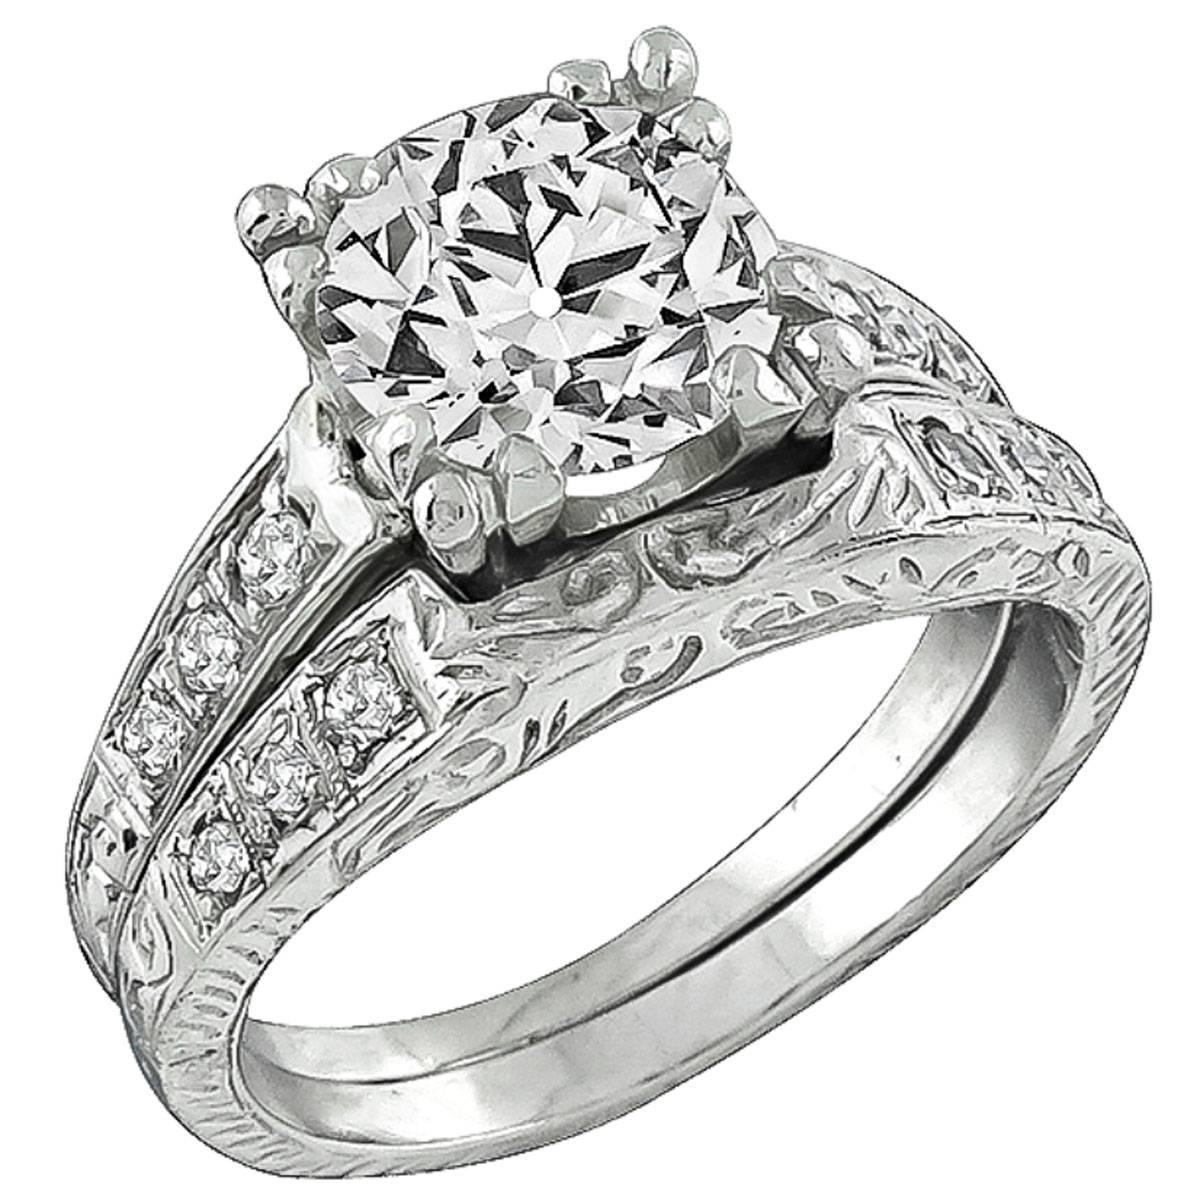 Antique Engagement Rings For Sale: Antique Diamond Platinum Engagement Ring And Wedding Band